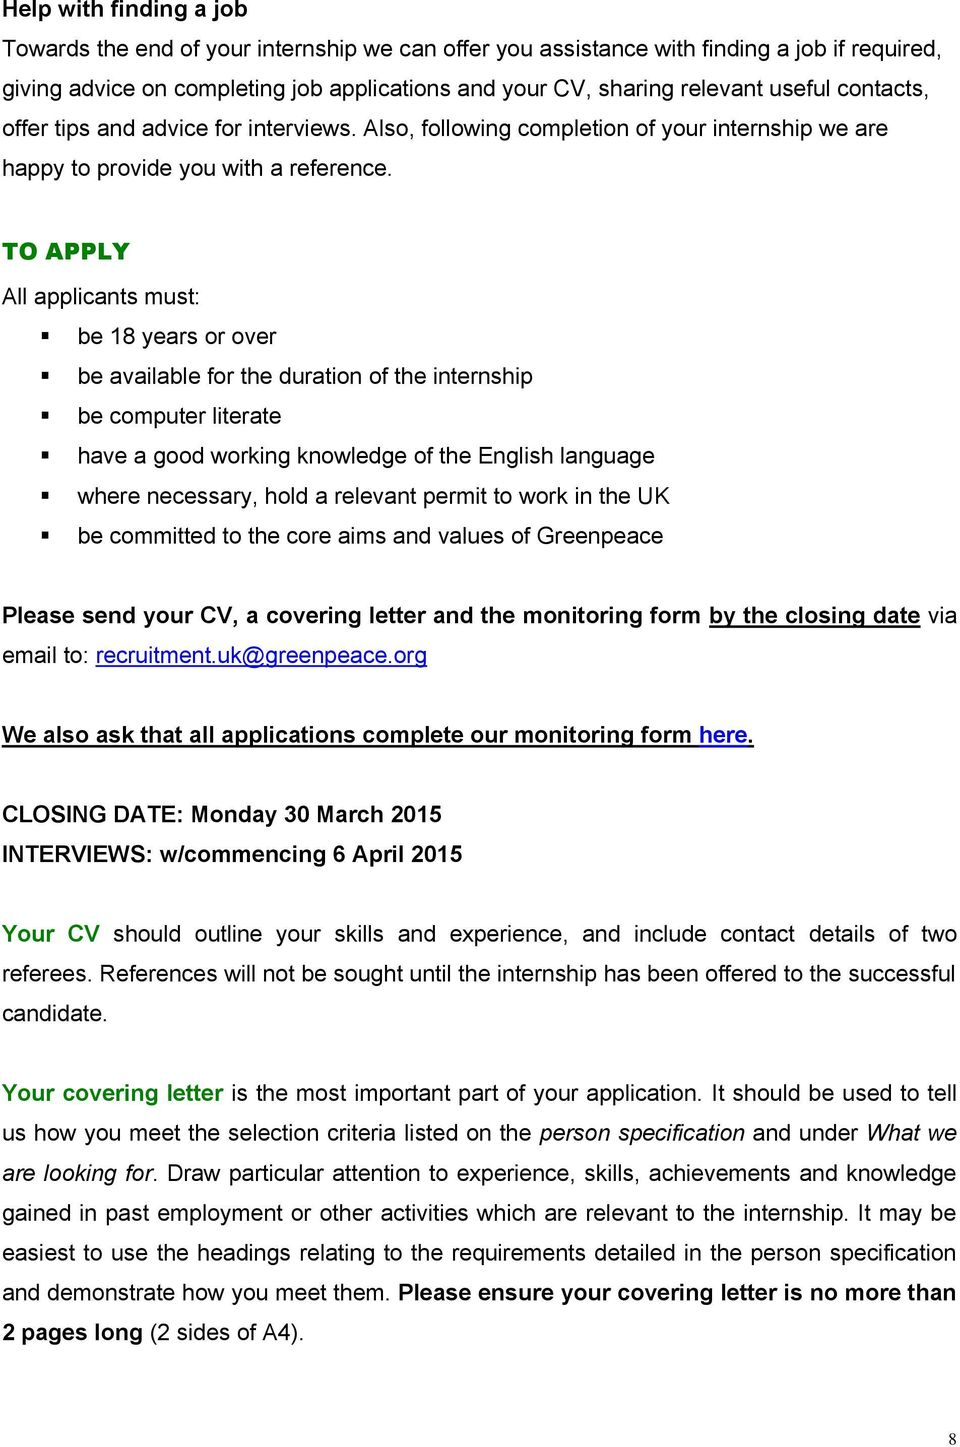 TO APPLY All applicants must: be 18 years or over be available for the duration of the internship be computer literate have a good working knowledge of the English language where necessary, hold a